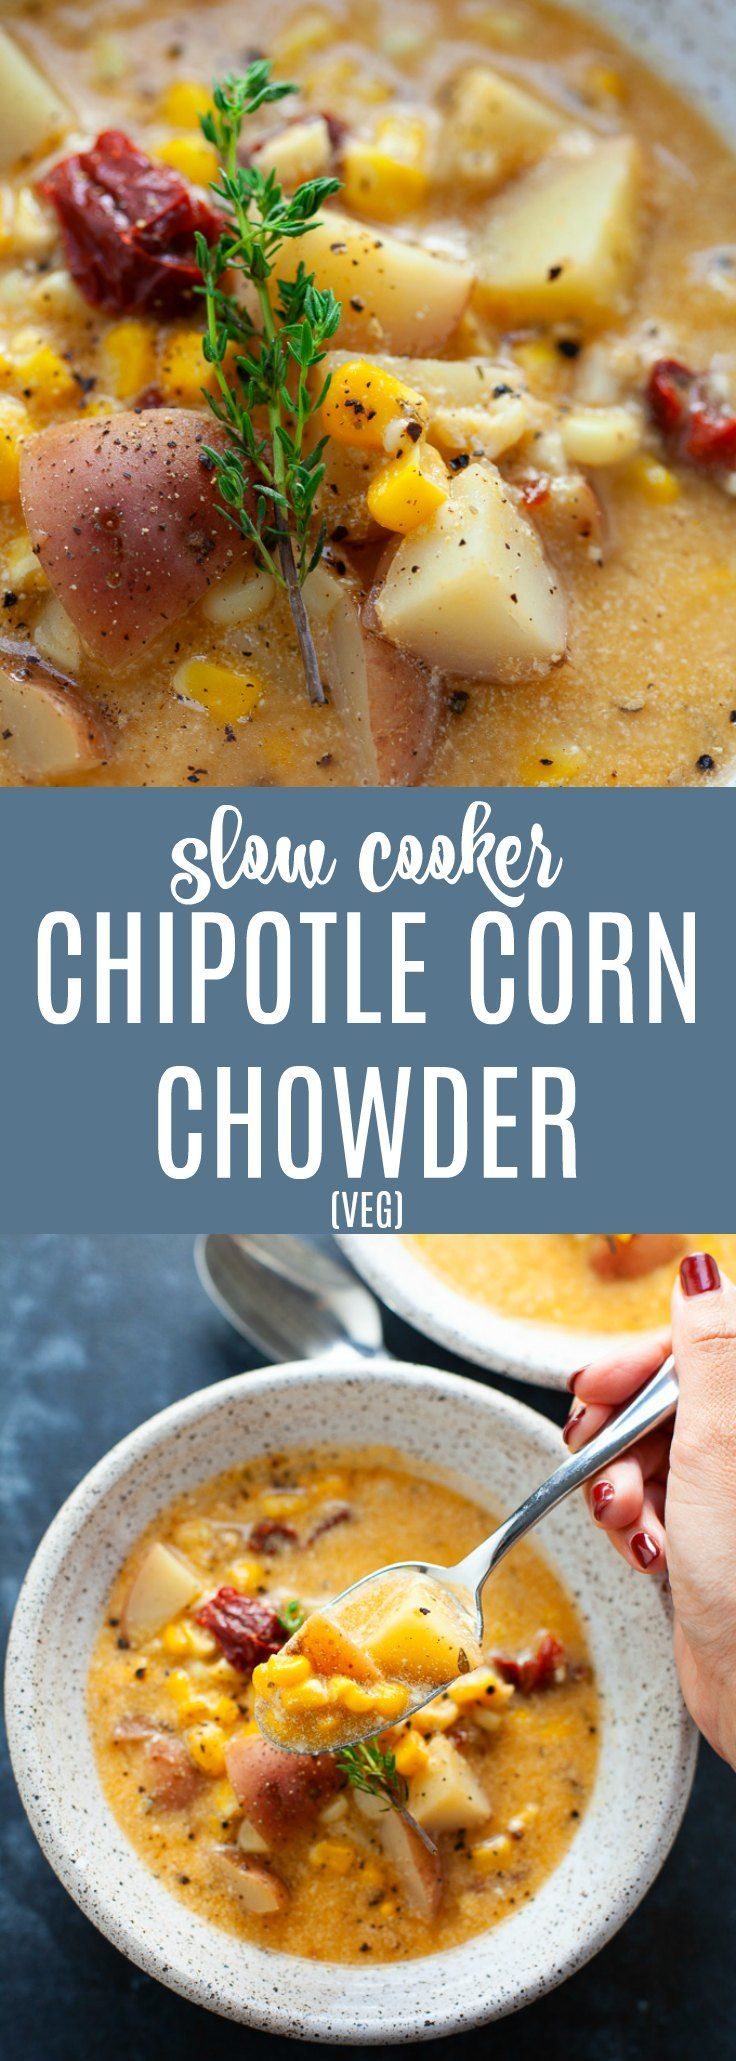 Slow Cooker Chipotle Corn Chowdertakes less than 15 minutes to prepare and packs in a bit of heat for a whole lot of flavor. ...